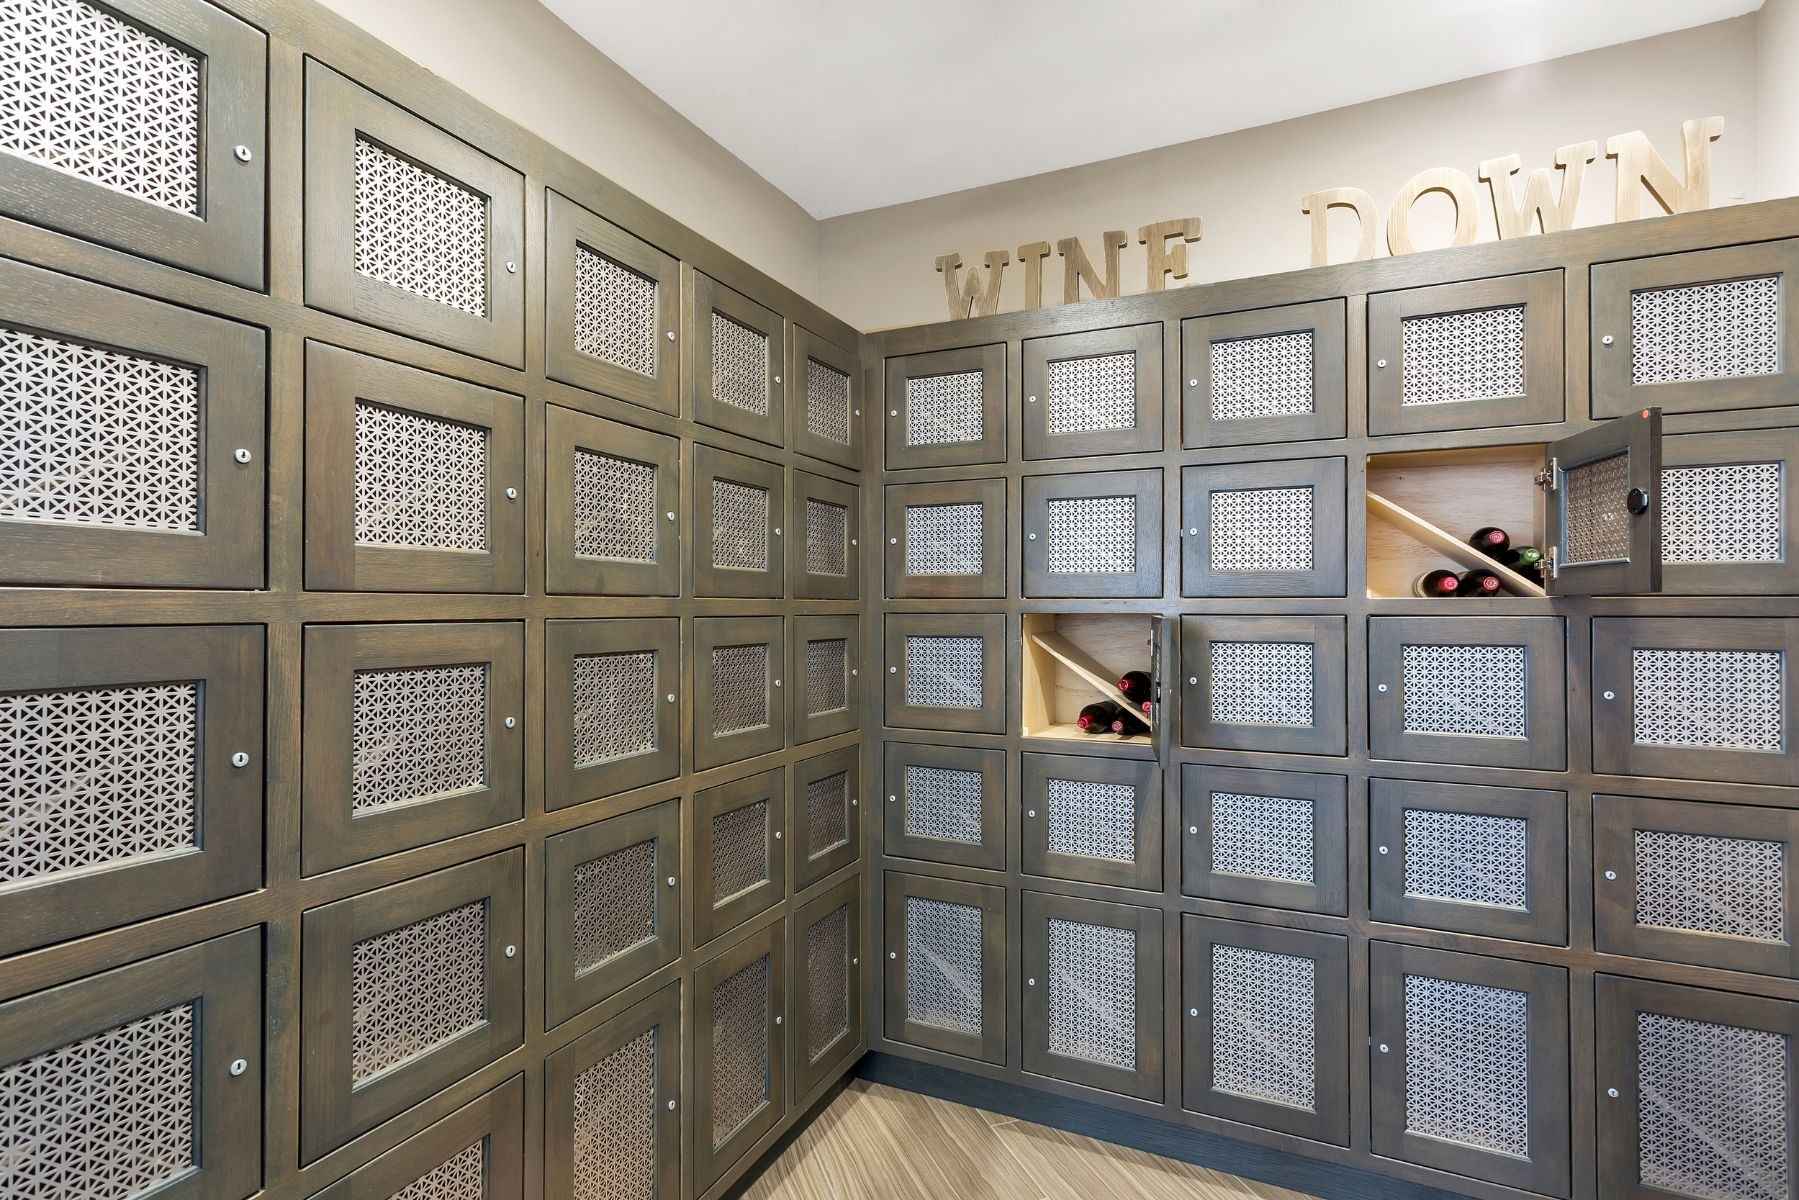 Westwood Green Apartments Clubhouse Wine Room with Lockers